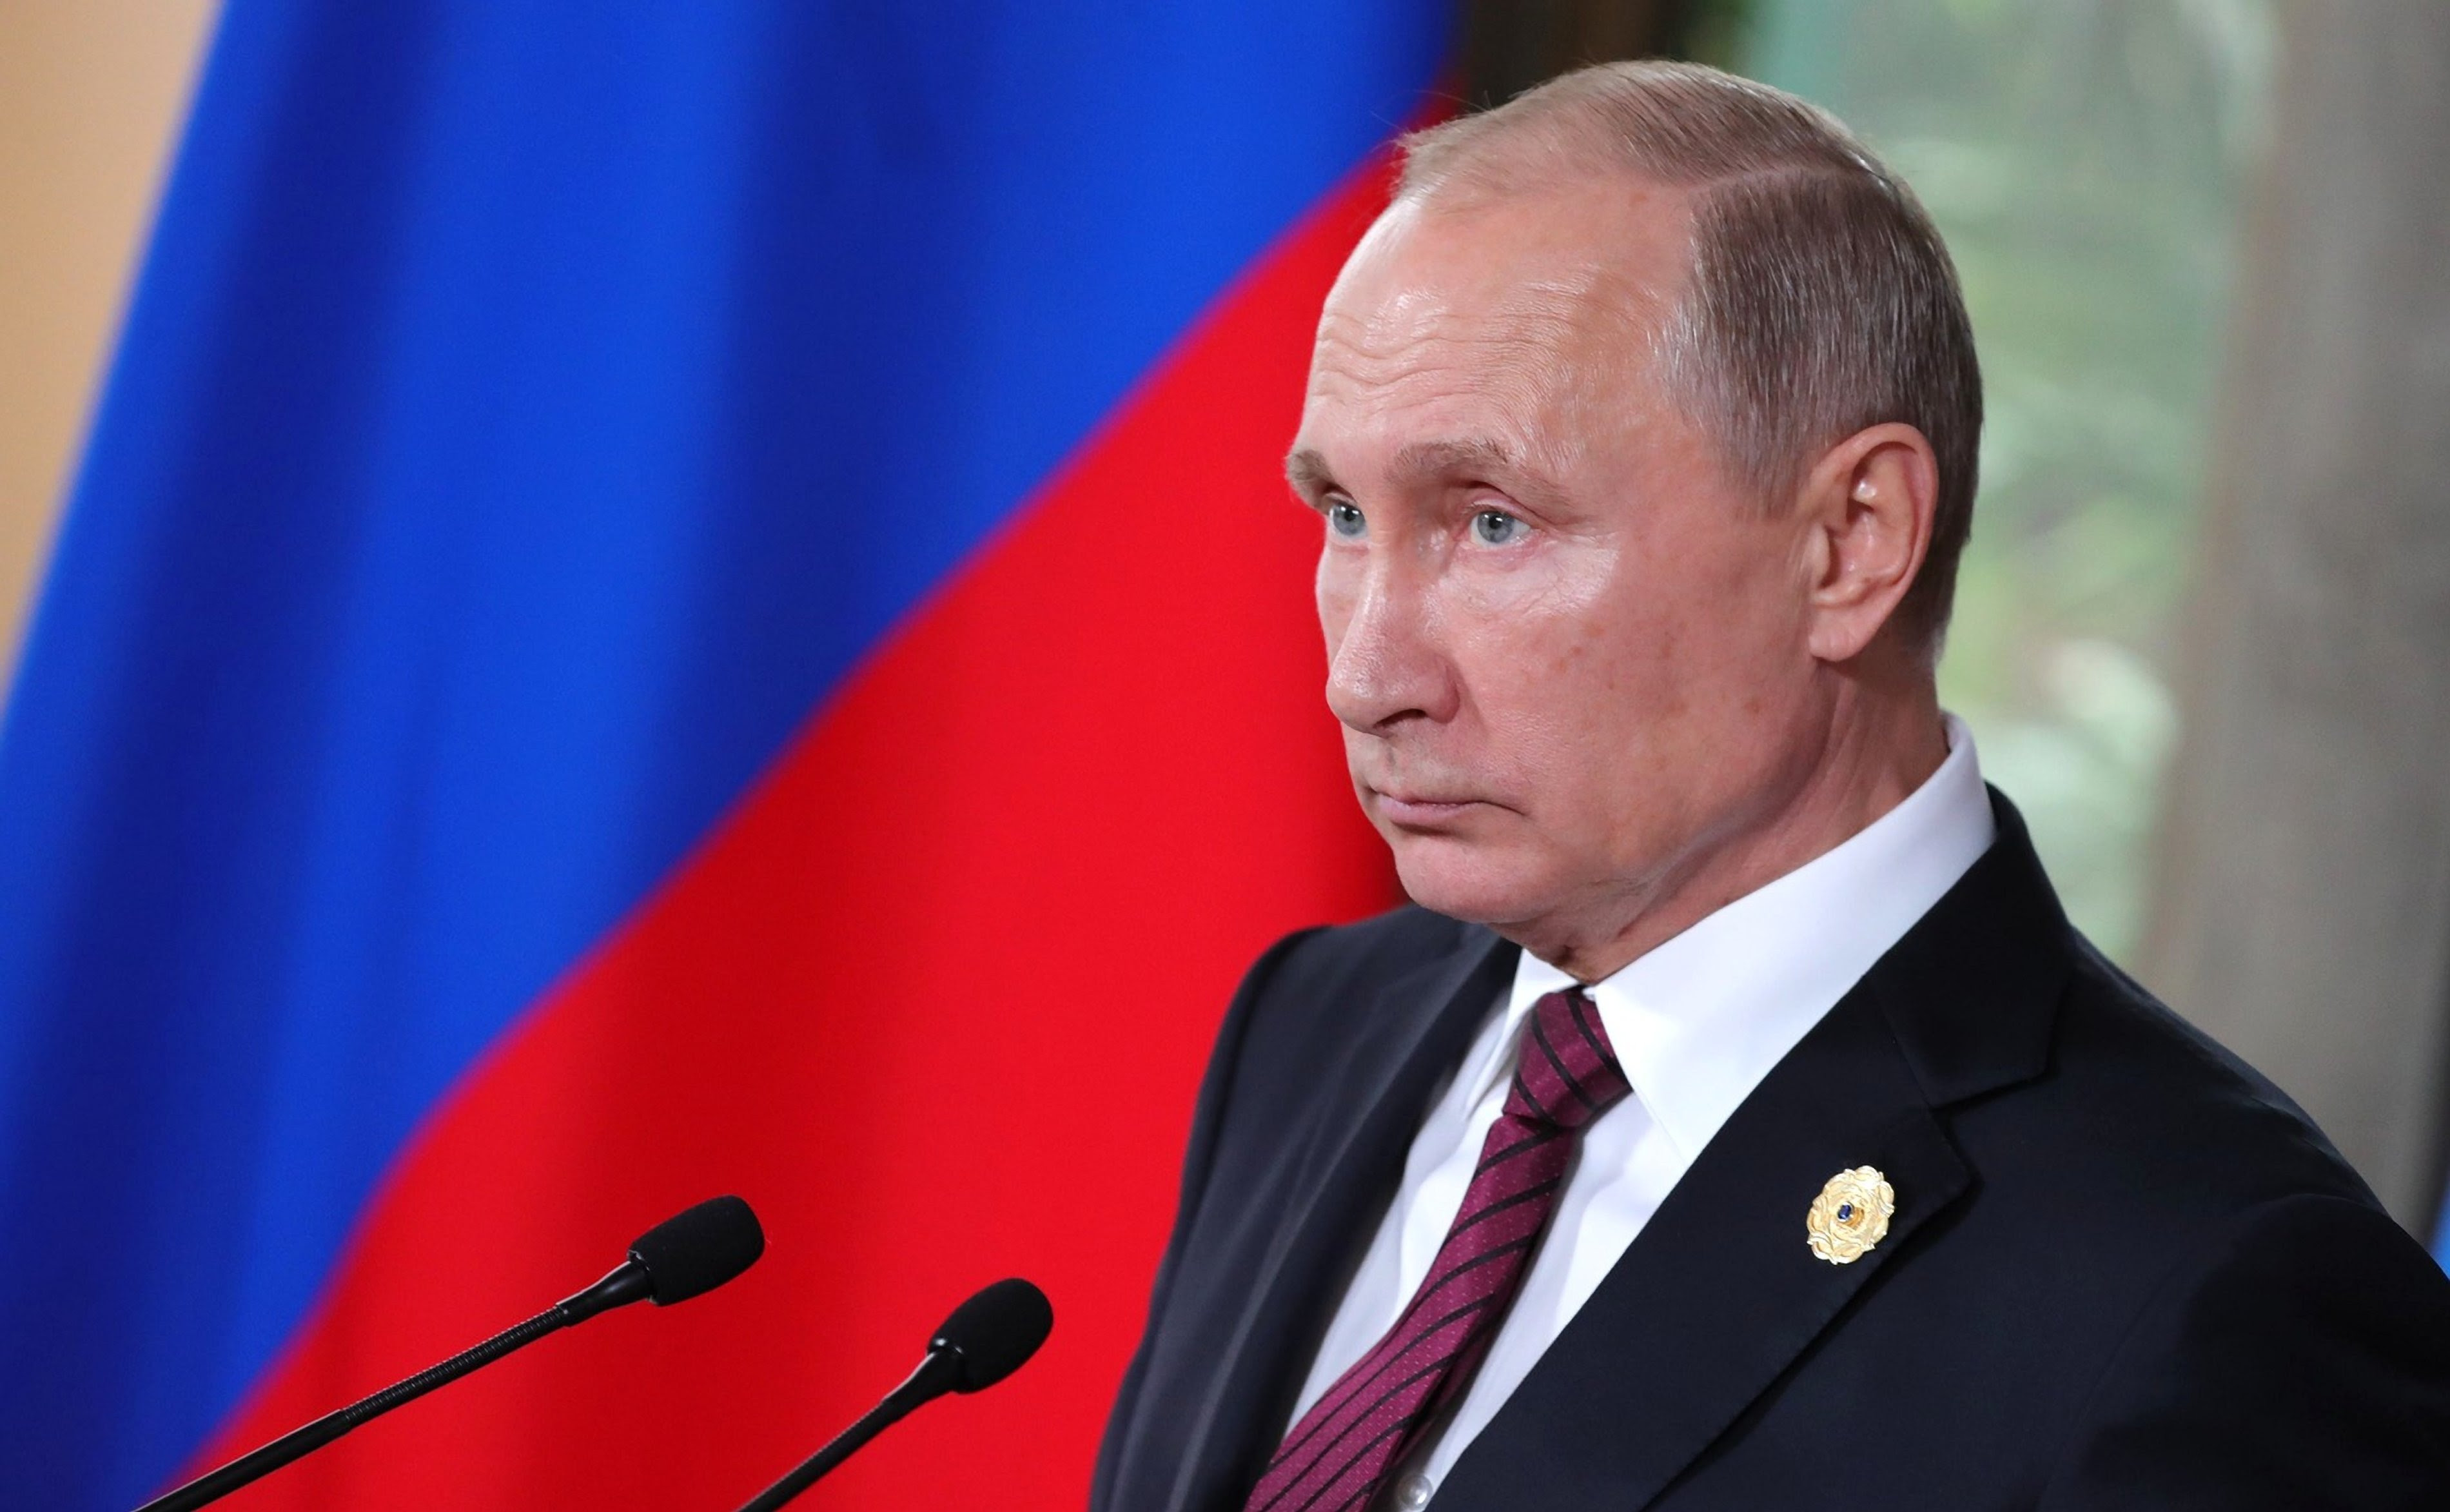 Russian President Vladimir Putin holds a press briefing at the conclusion of the 25th APEC Summit meeting November 11, 2017 in Vietnam.